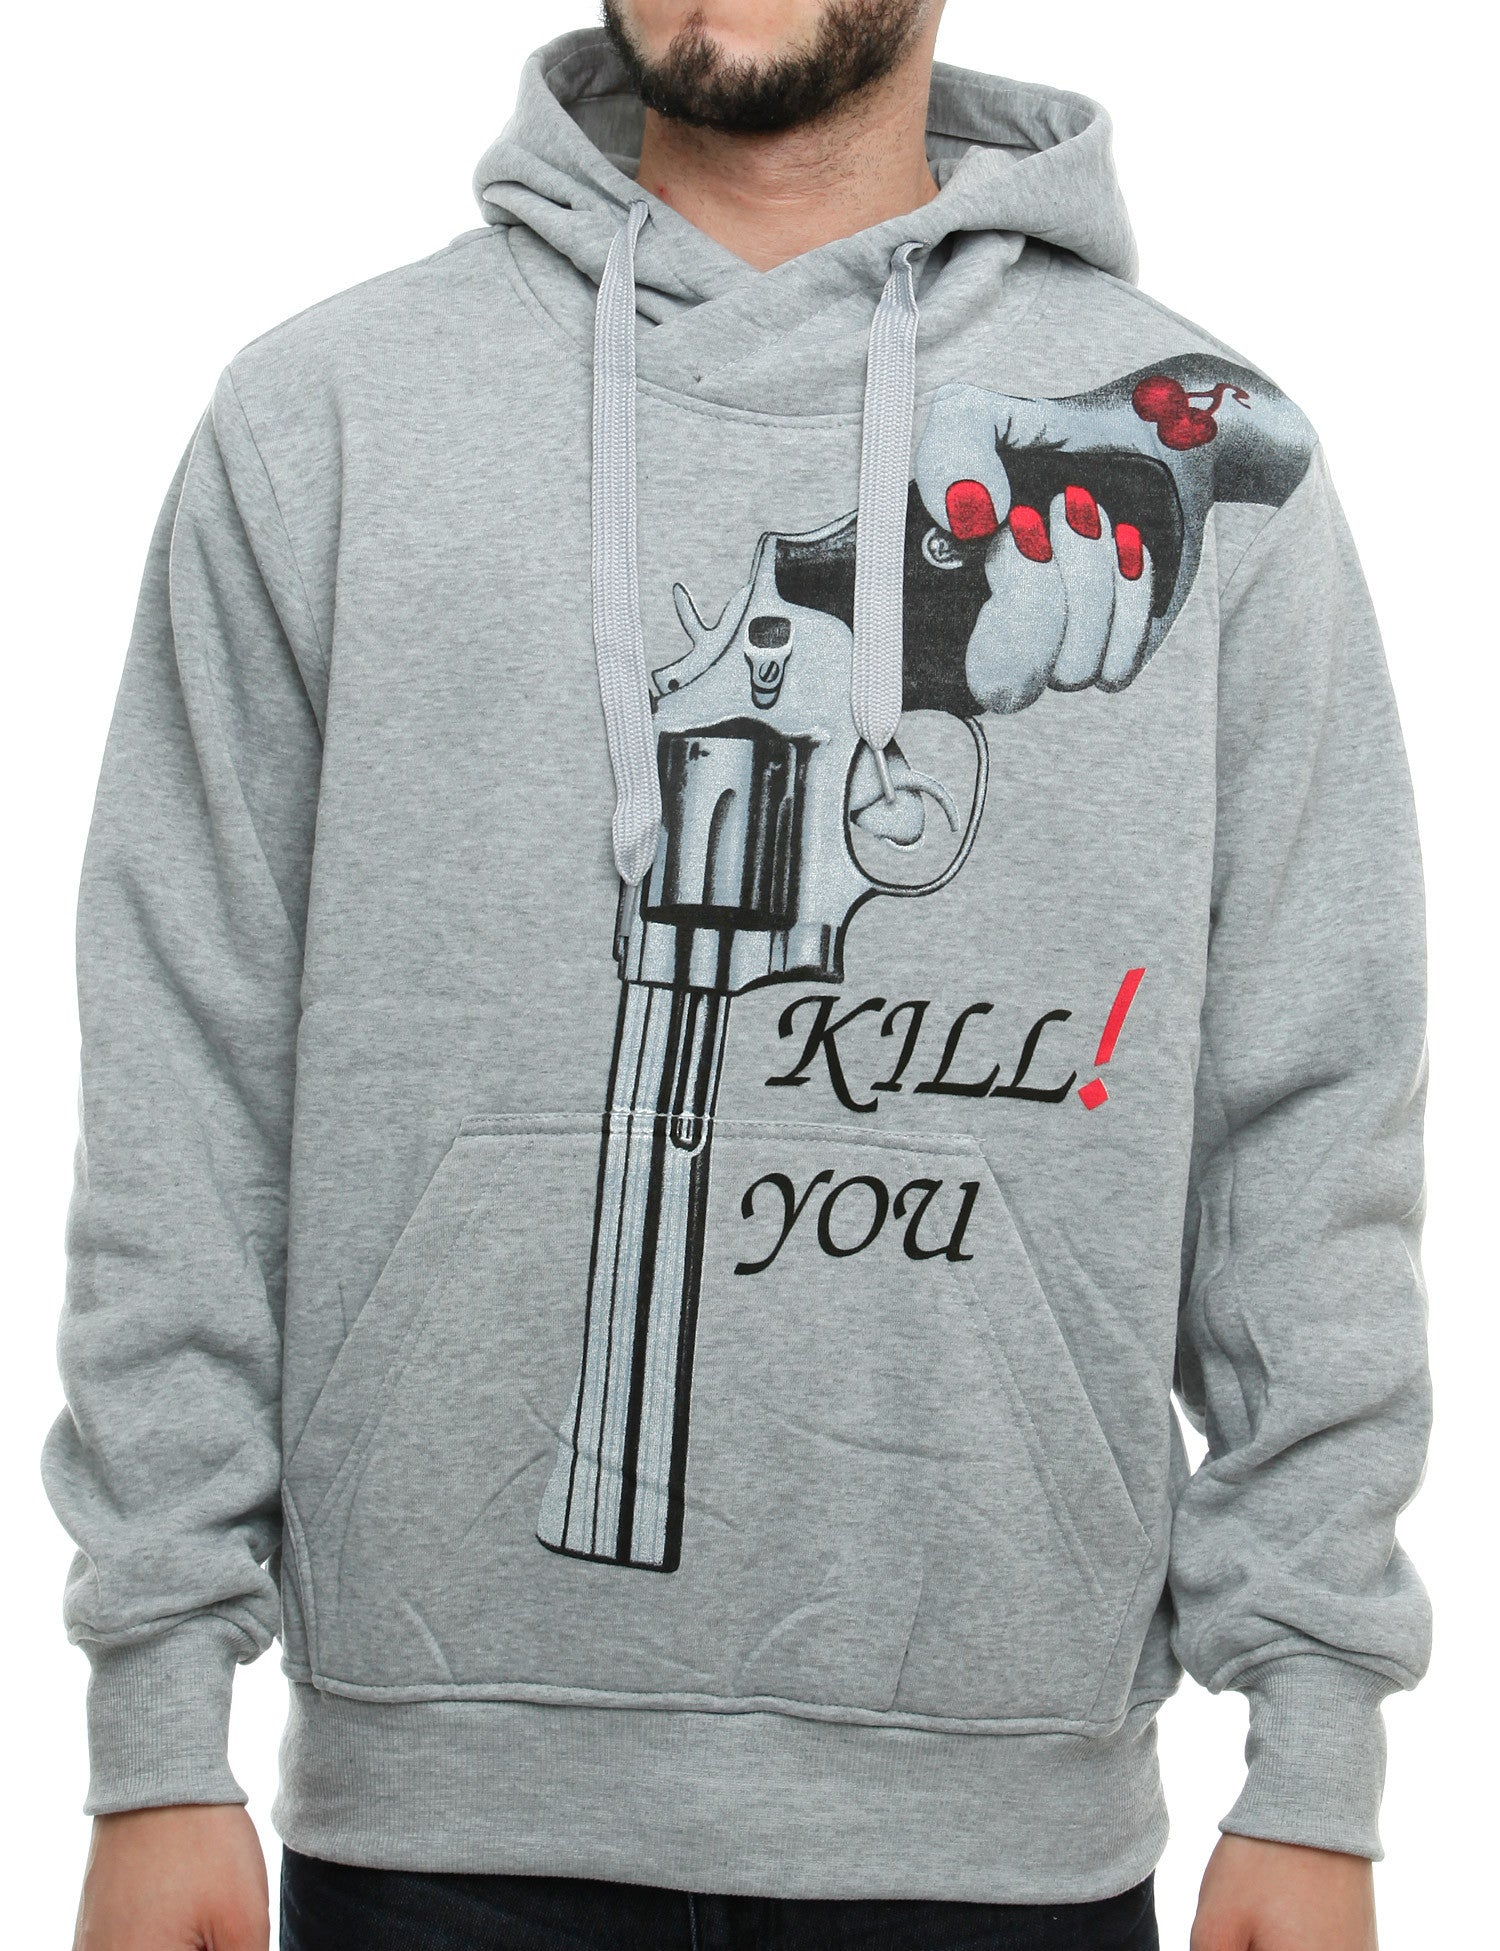 Korex Kill You Hoody K1 Grey